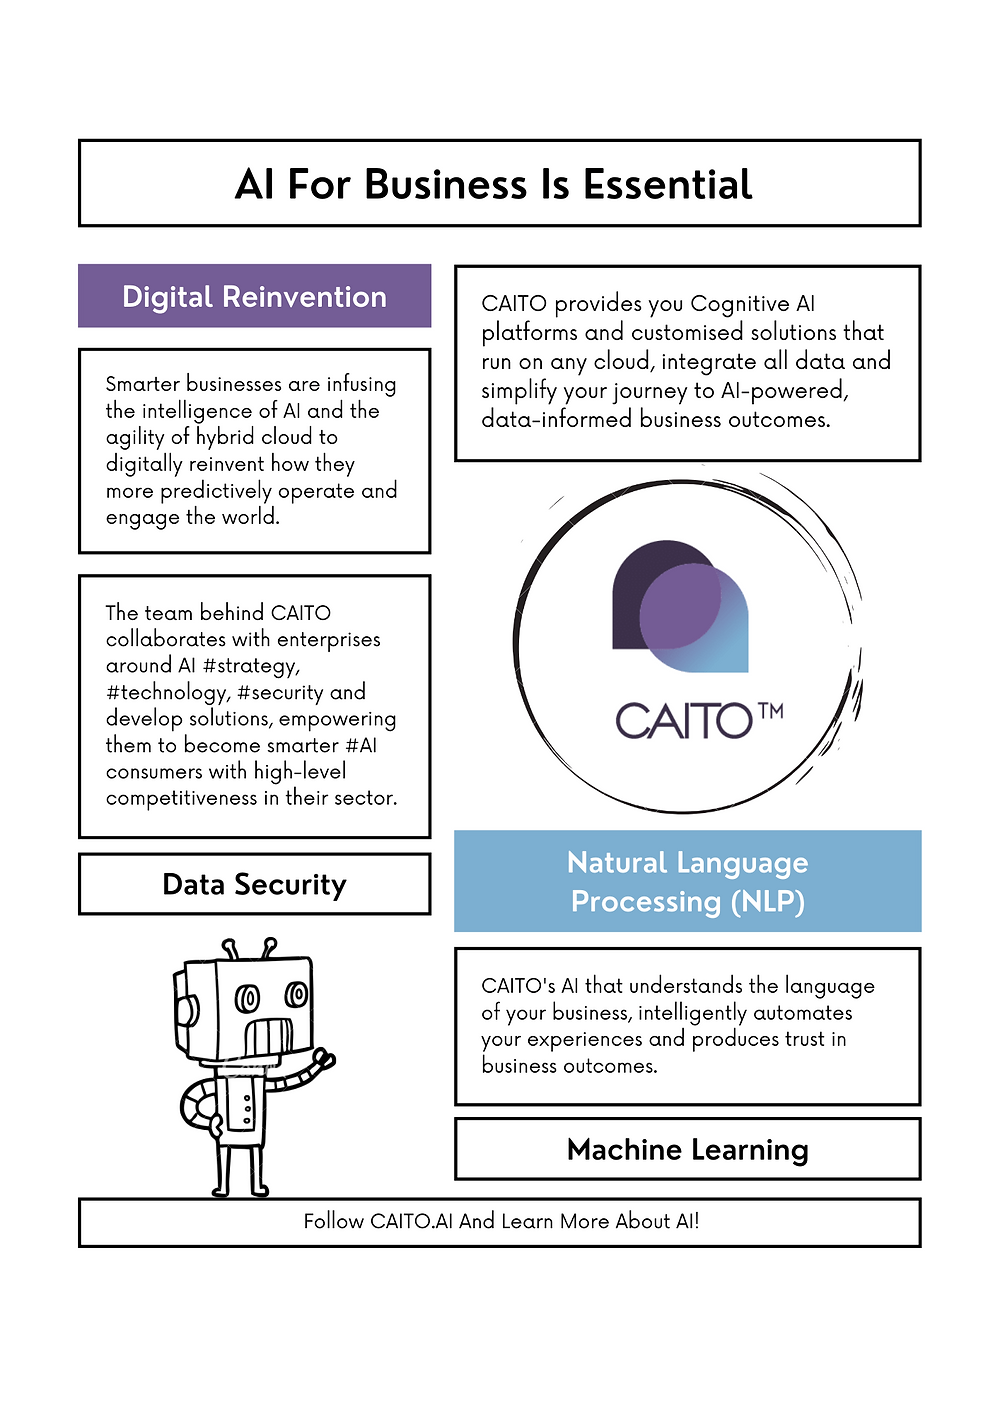 AI for business is essential. CAITO provides you customised CAI solutions that run on any cloud, integrate all data and simplify your journey to AI-powered, data-informed business outcomes.